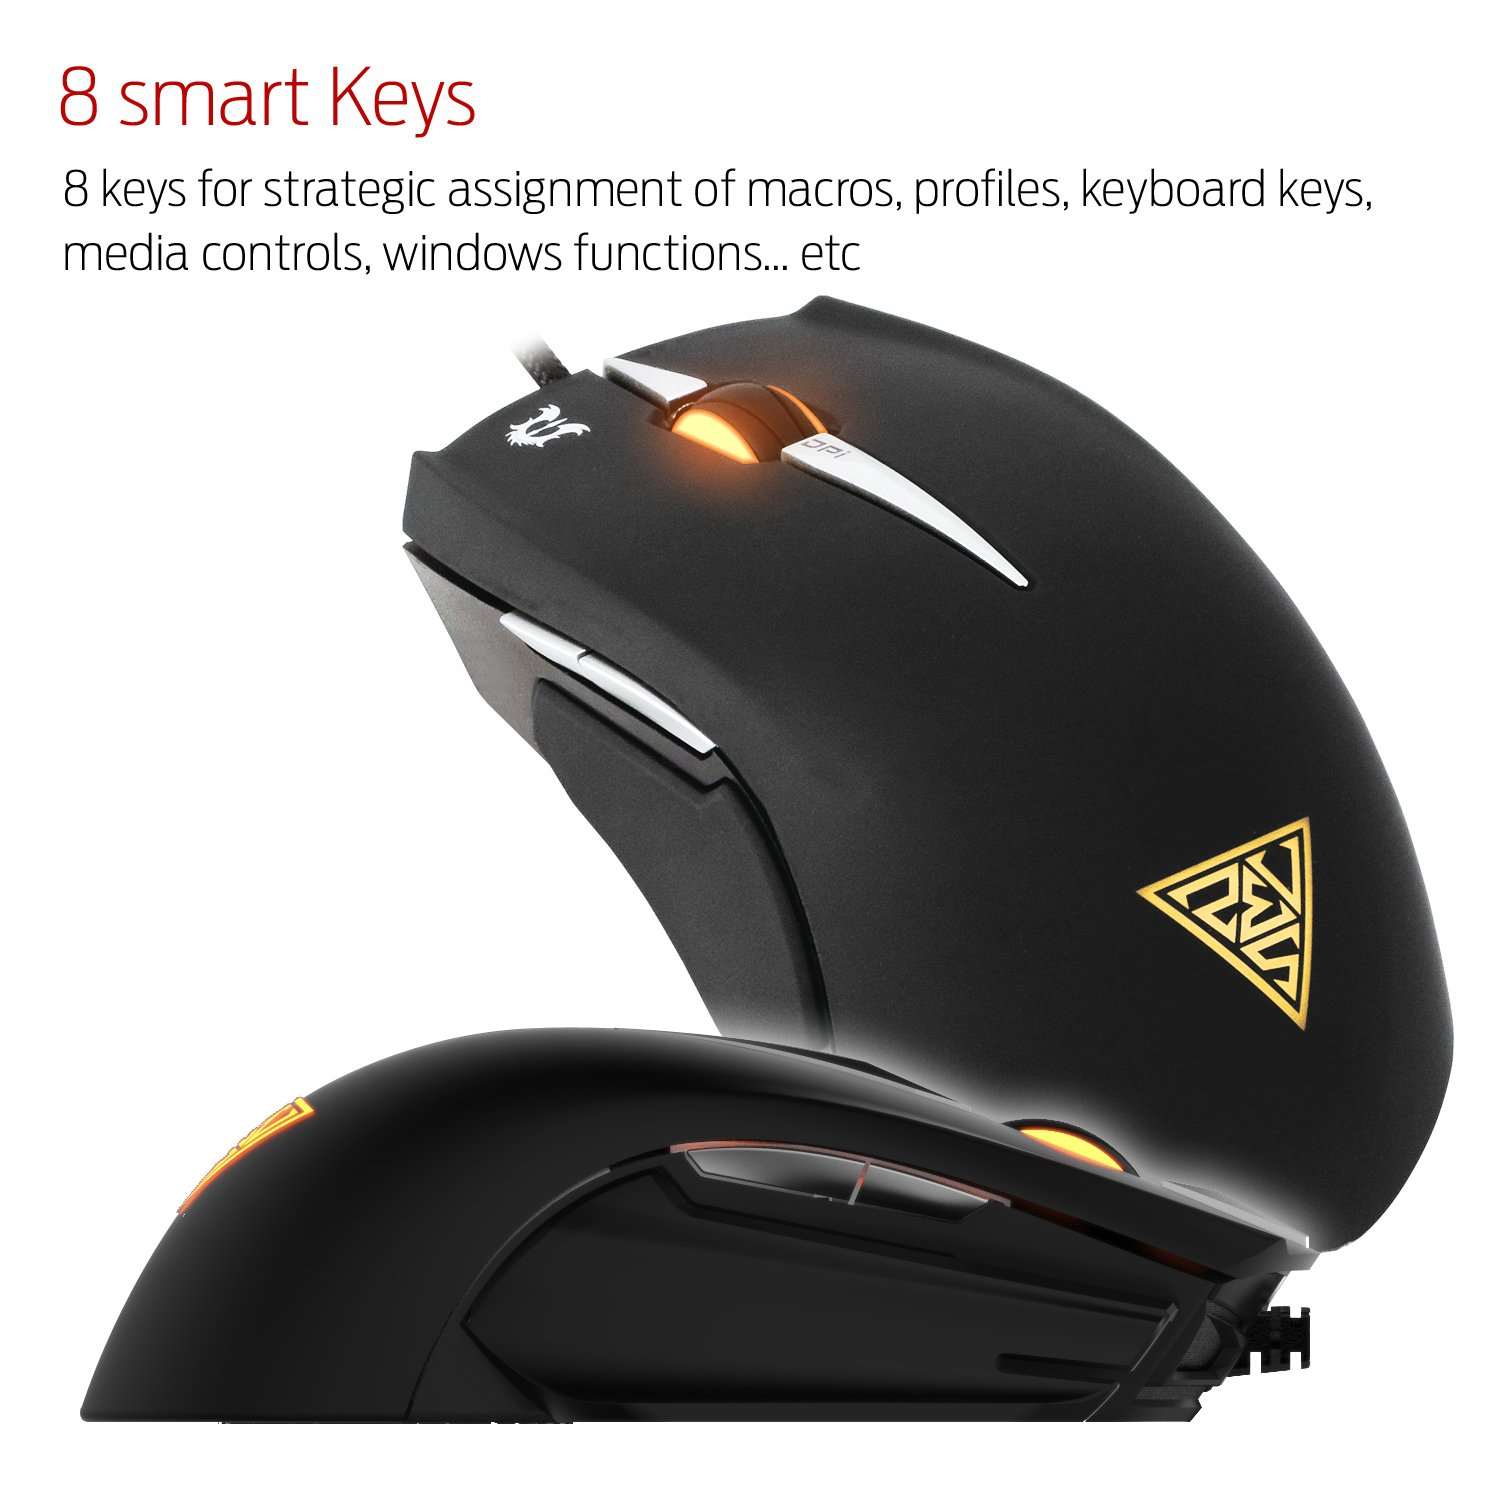 GAMDIAS Erebos GMS7500 Optical MOBA Gaming Mouse, 3 Set Ambidextrous  Adjustable Side Panels Weight System, 7 Programmable Buttons, 8200 DPI for PC by GAMDIAS (Image #5)